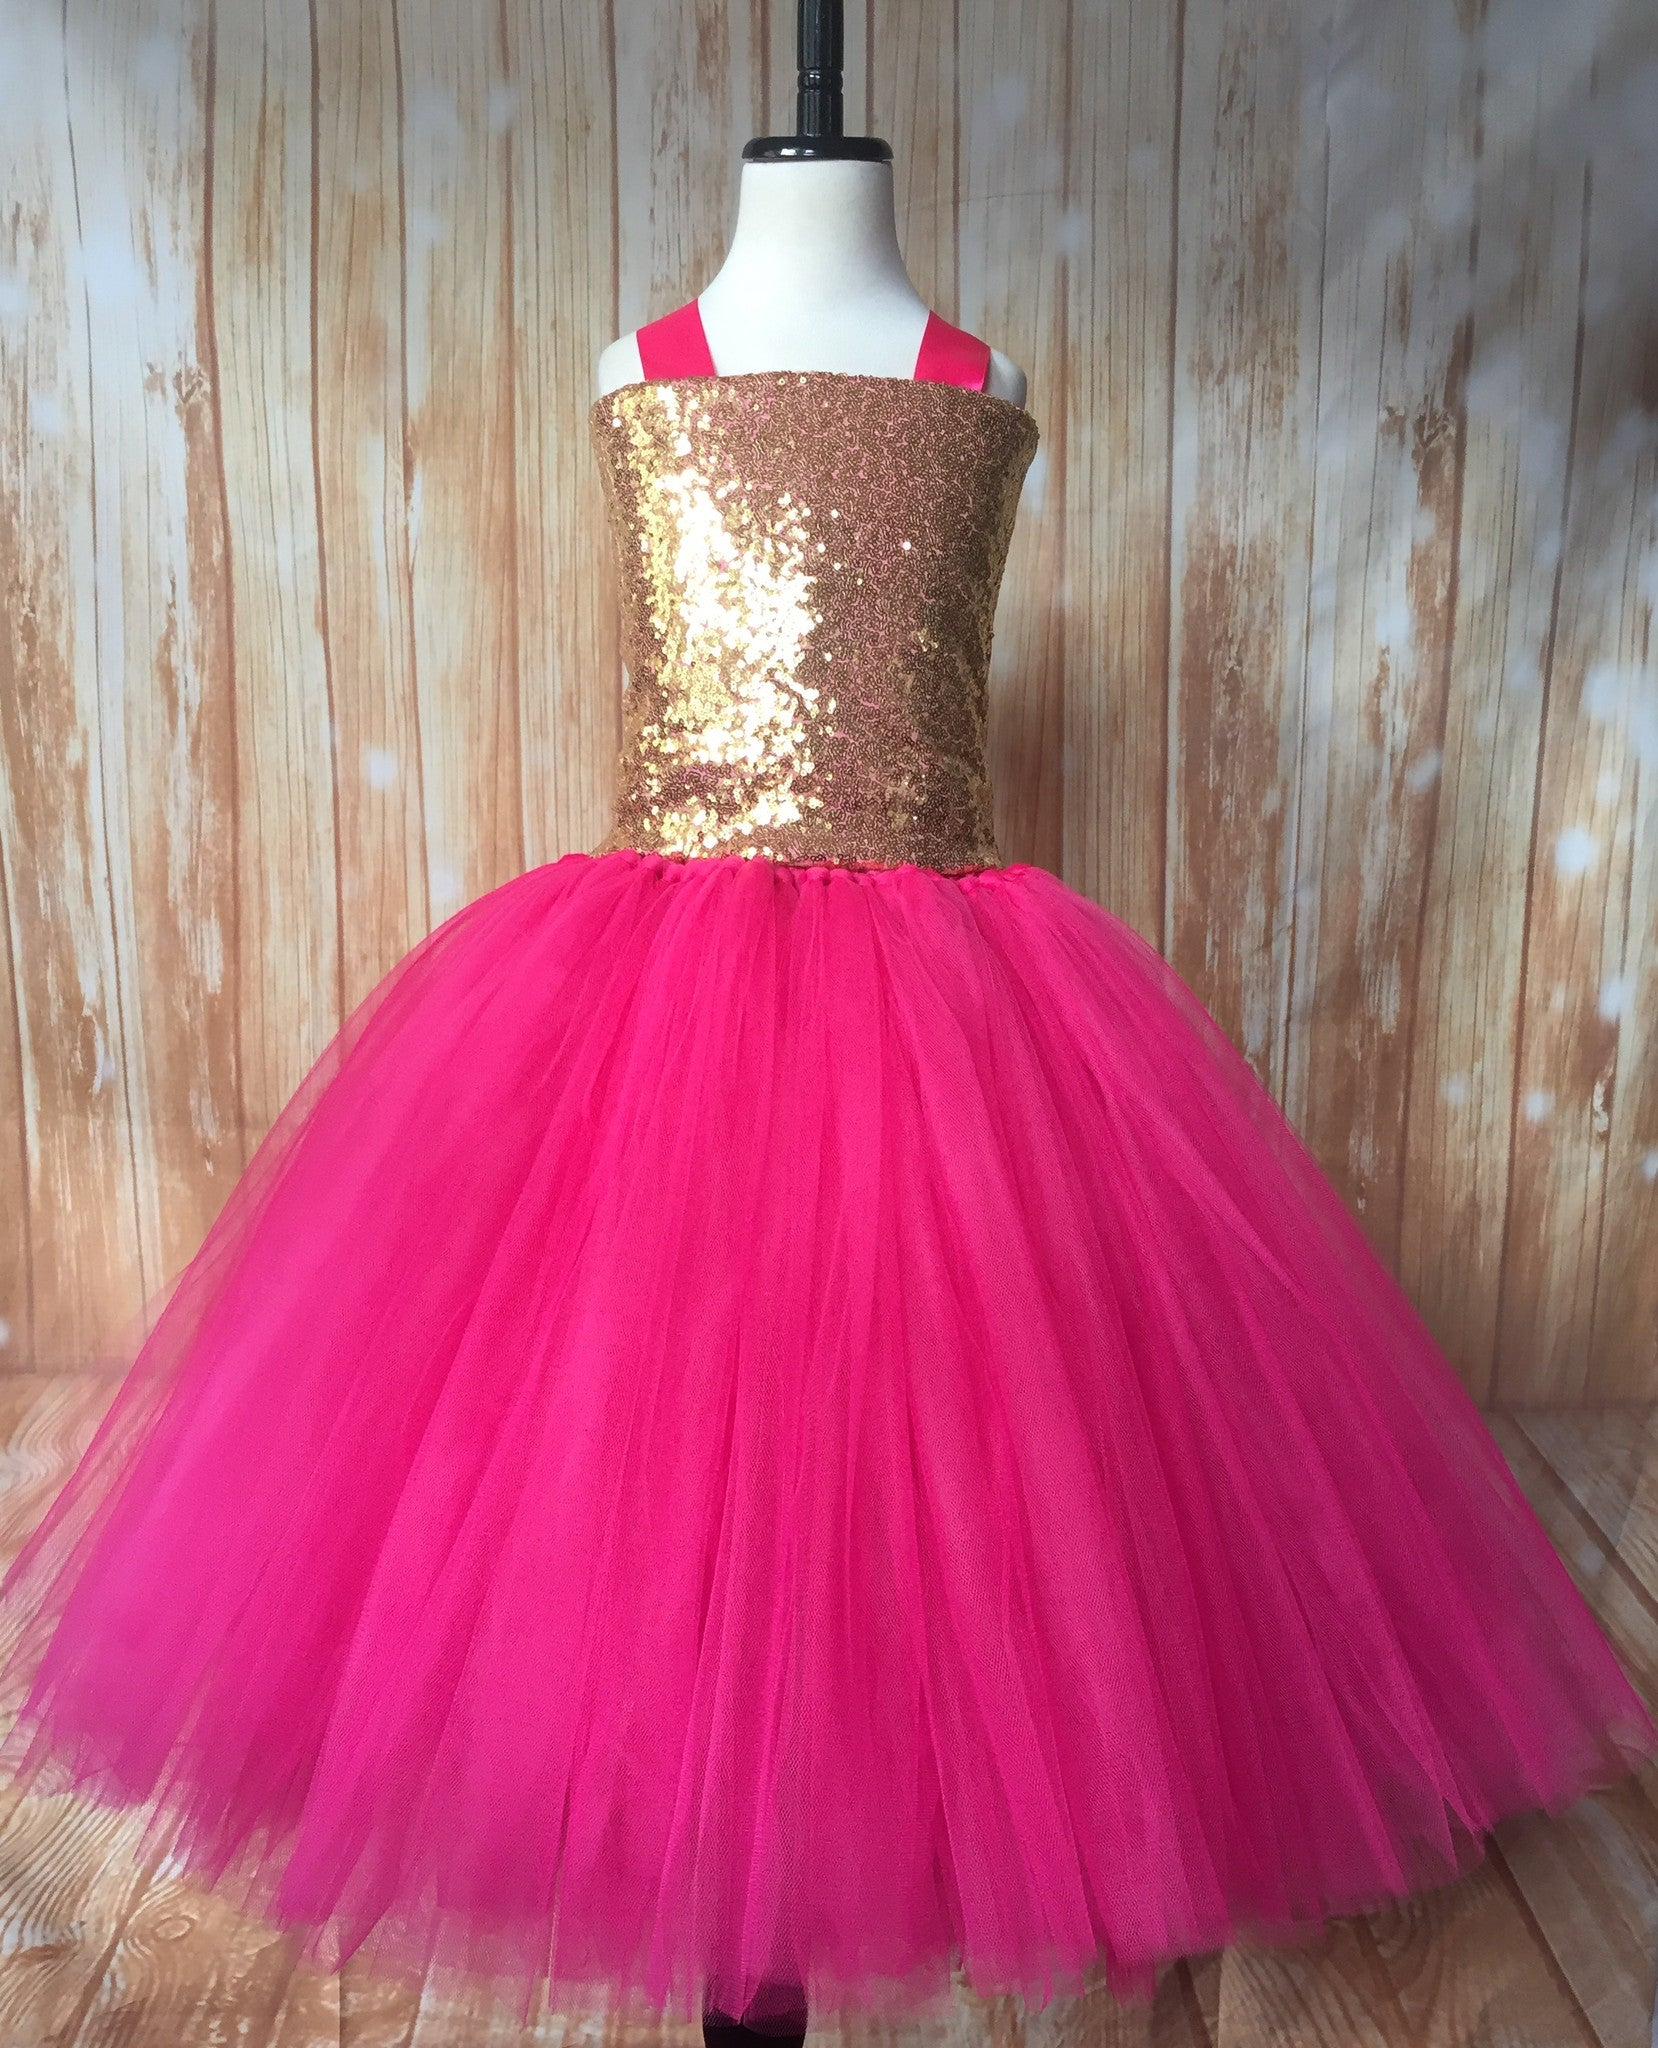 Gold & Pink Tutu, Gold and Hot Pink Tutu Dress, Girls Hot Pink & Gold Pageant Tutu - Little Ladybug Tutus